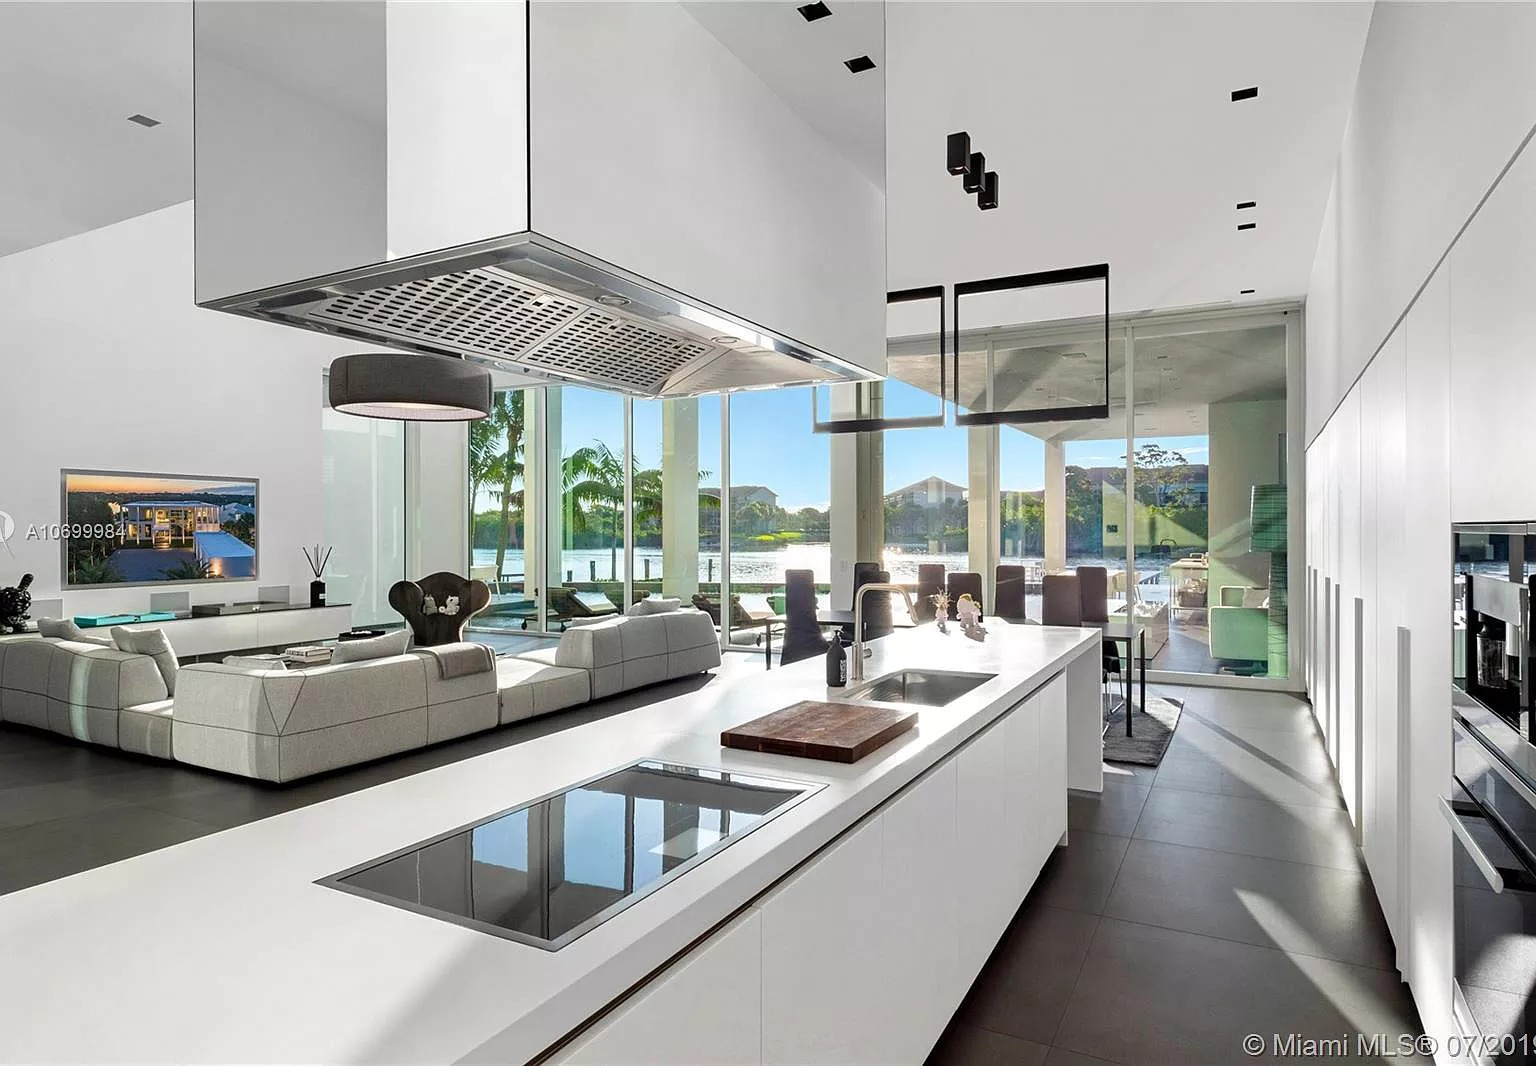 14844 Palmwood Rd, Palm Beach Gardens, FL 33410 - $10,500,000 home for sale, house images, photos and pics gallery